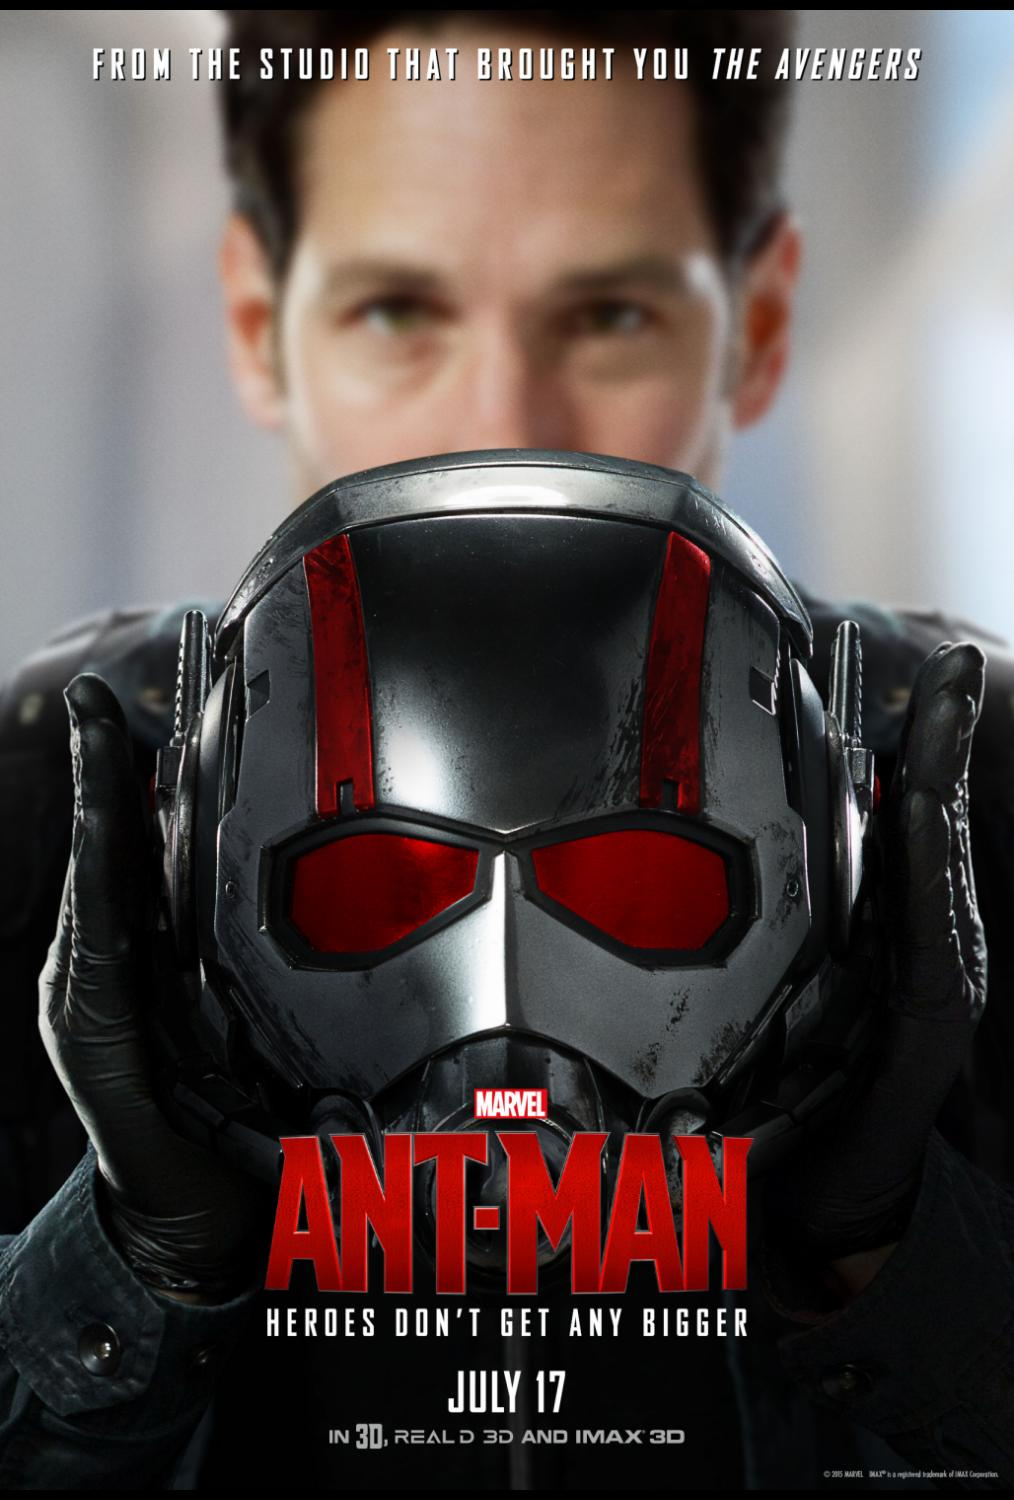 Ant-Man is NOW PLAYING